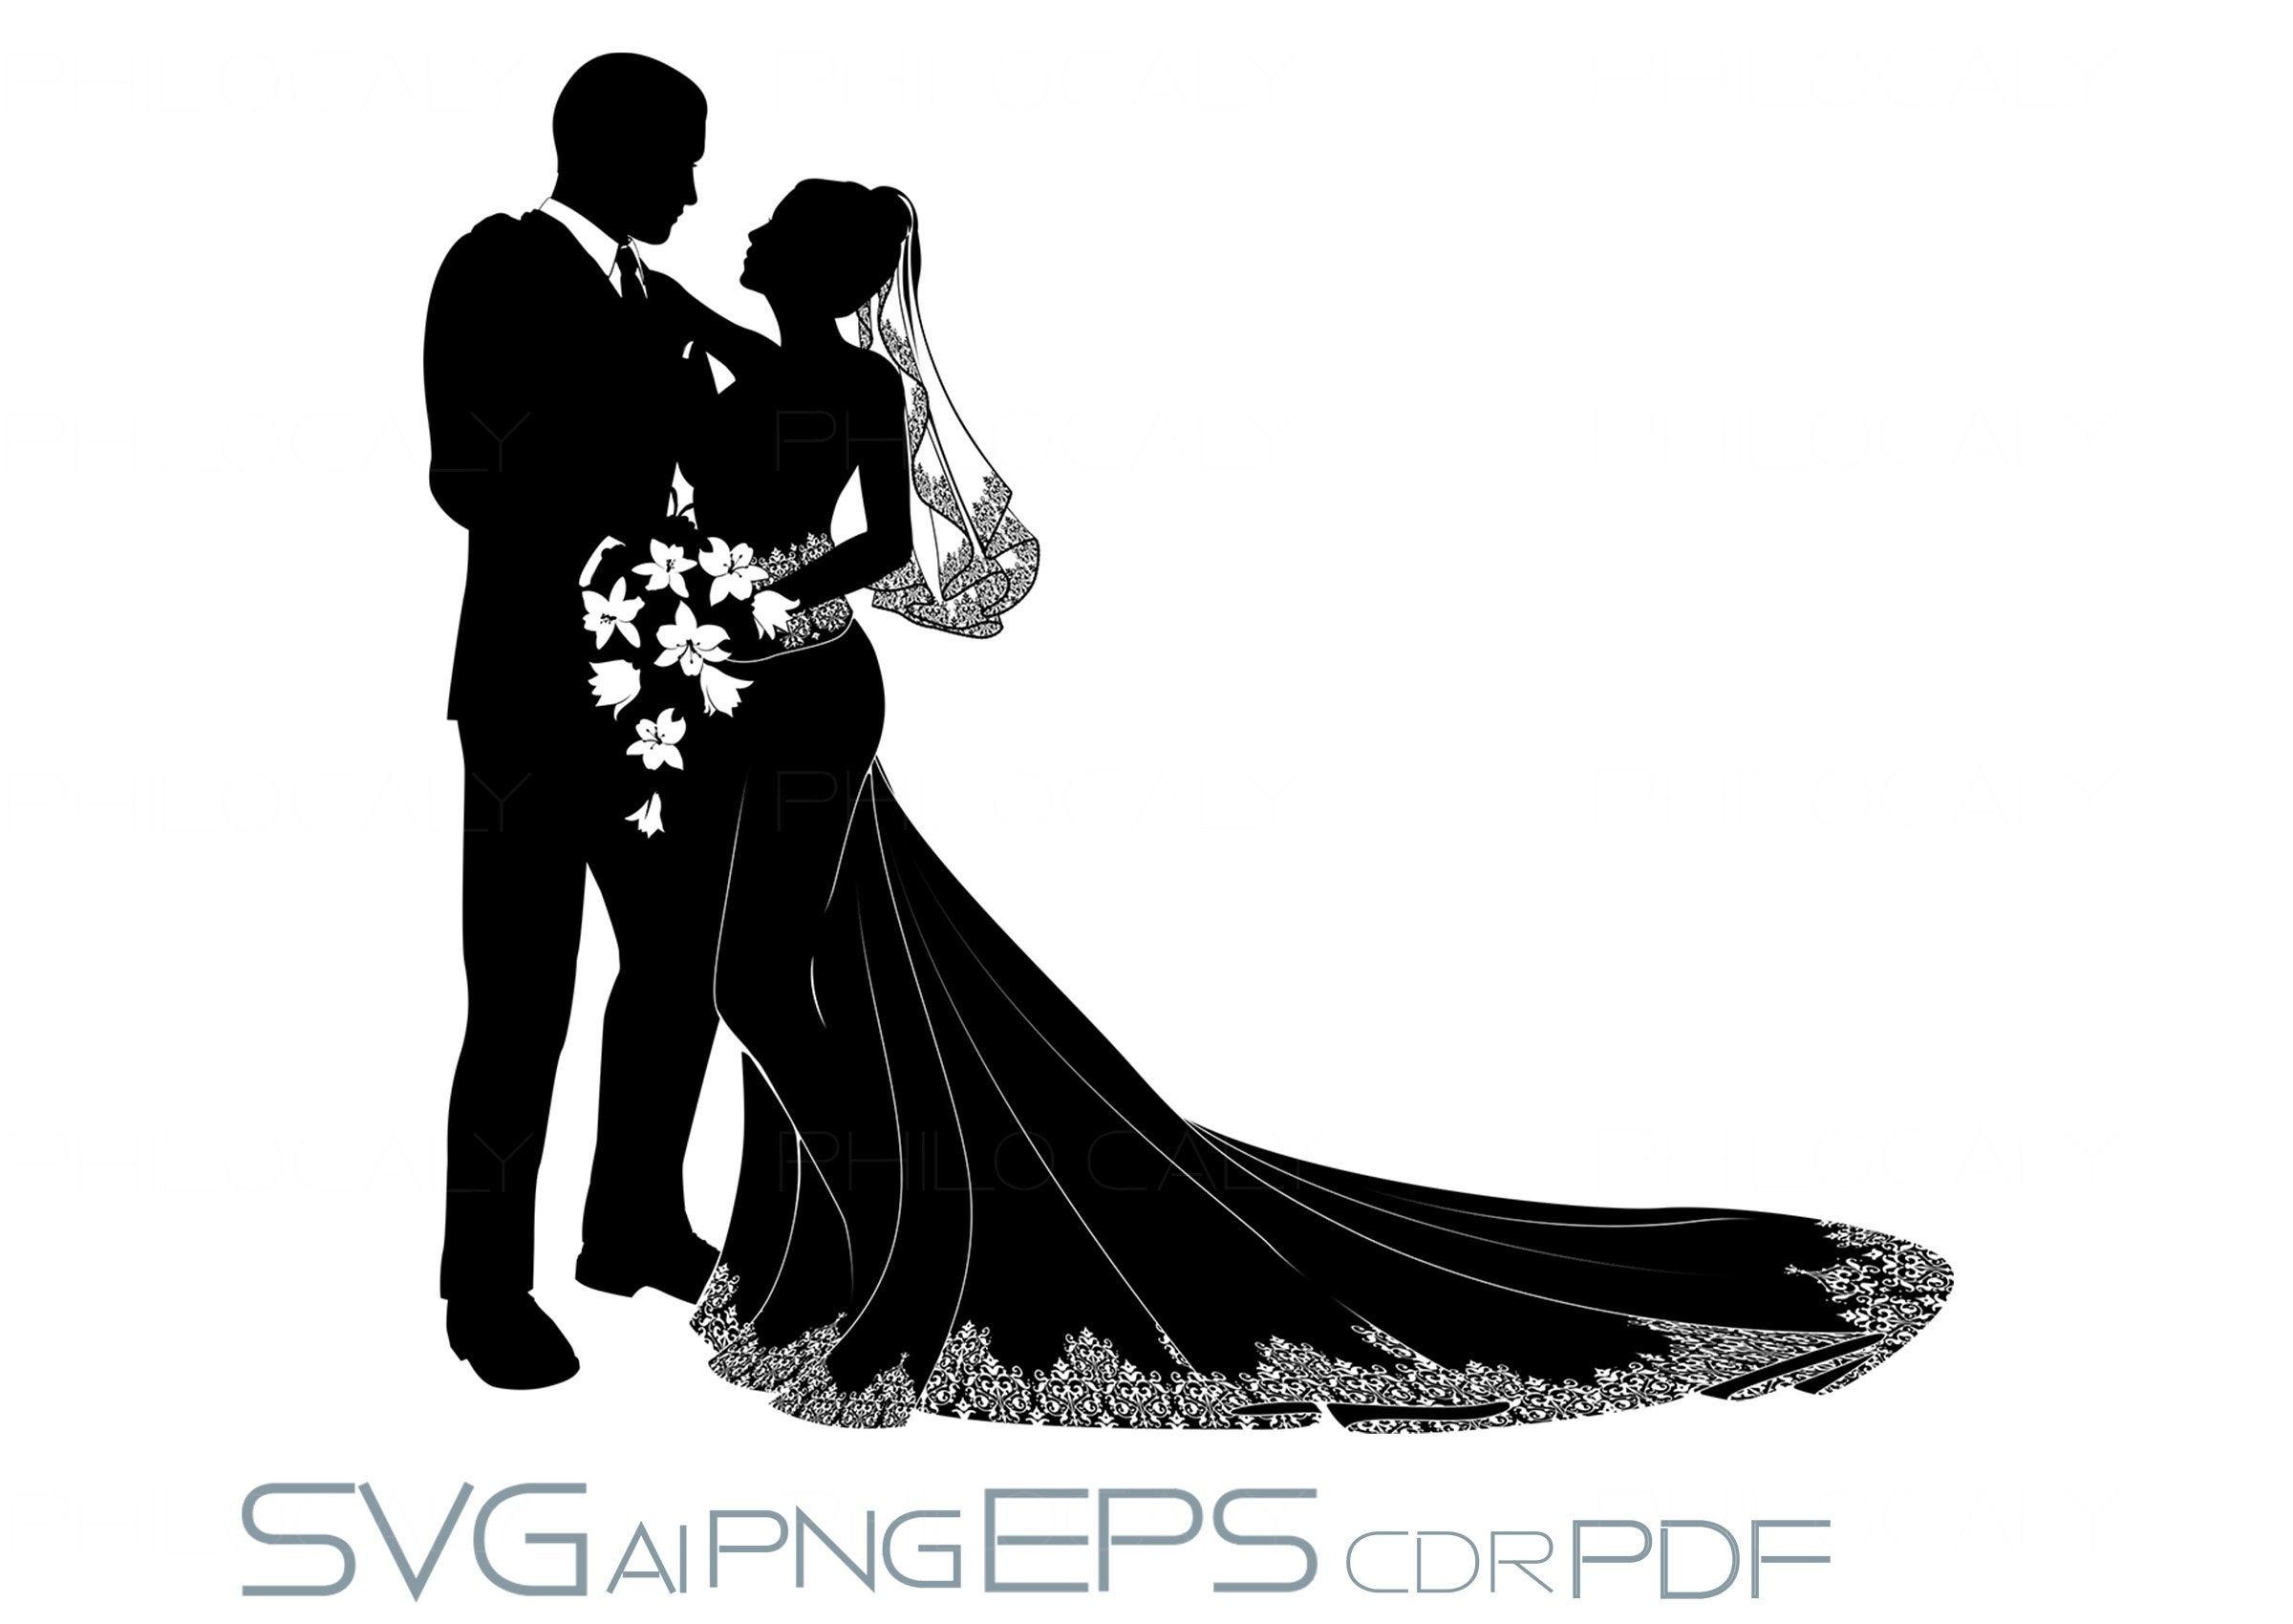 Bride And Groom Svg Wedding Figure Svg Wedding Ornament Svg Etsy In 2021 Wedding Silhouette Bride And Groom Silhouette Bride Silhouette